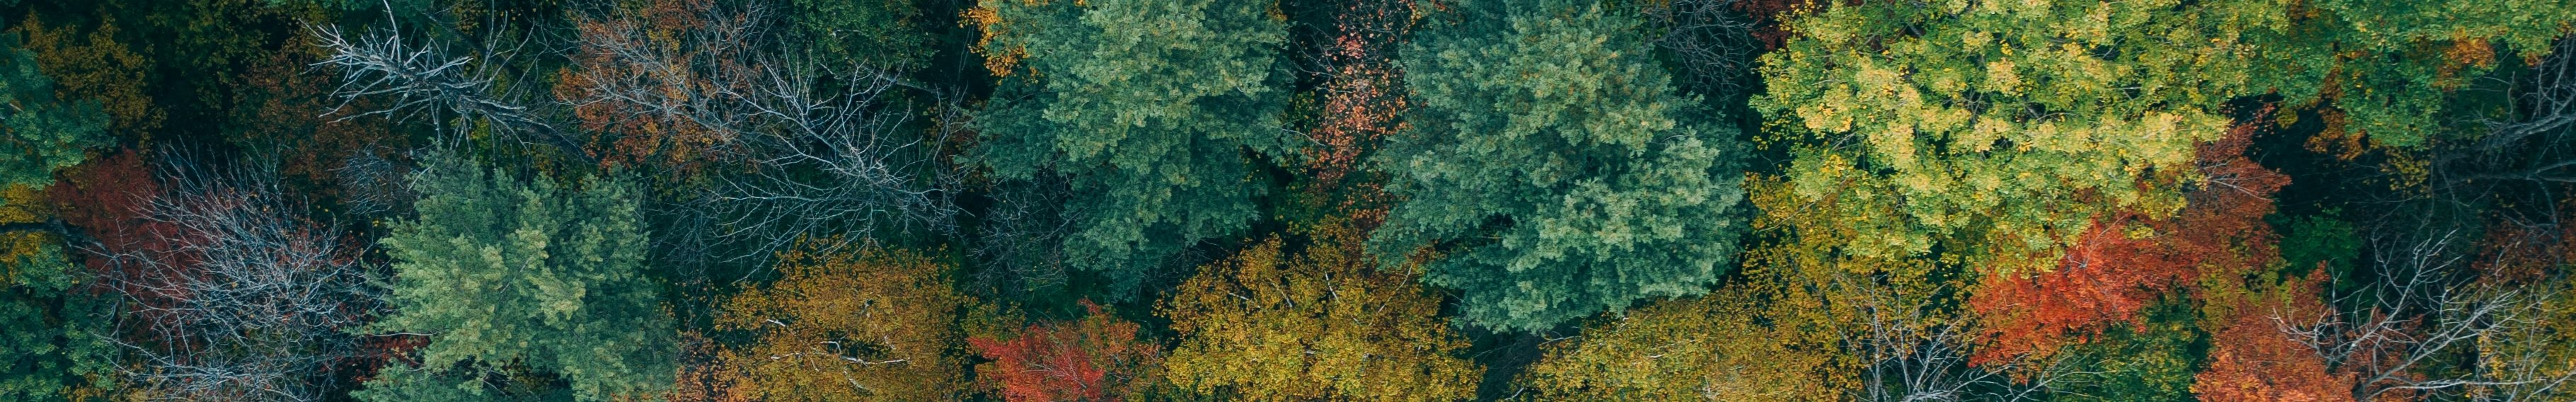 Stock Image Aerial View Over North Carolina Woods with Green Yellow and Orange Leaves